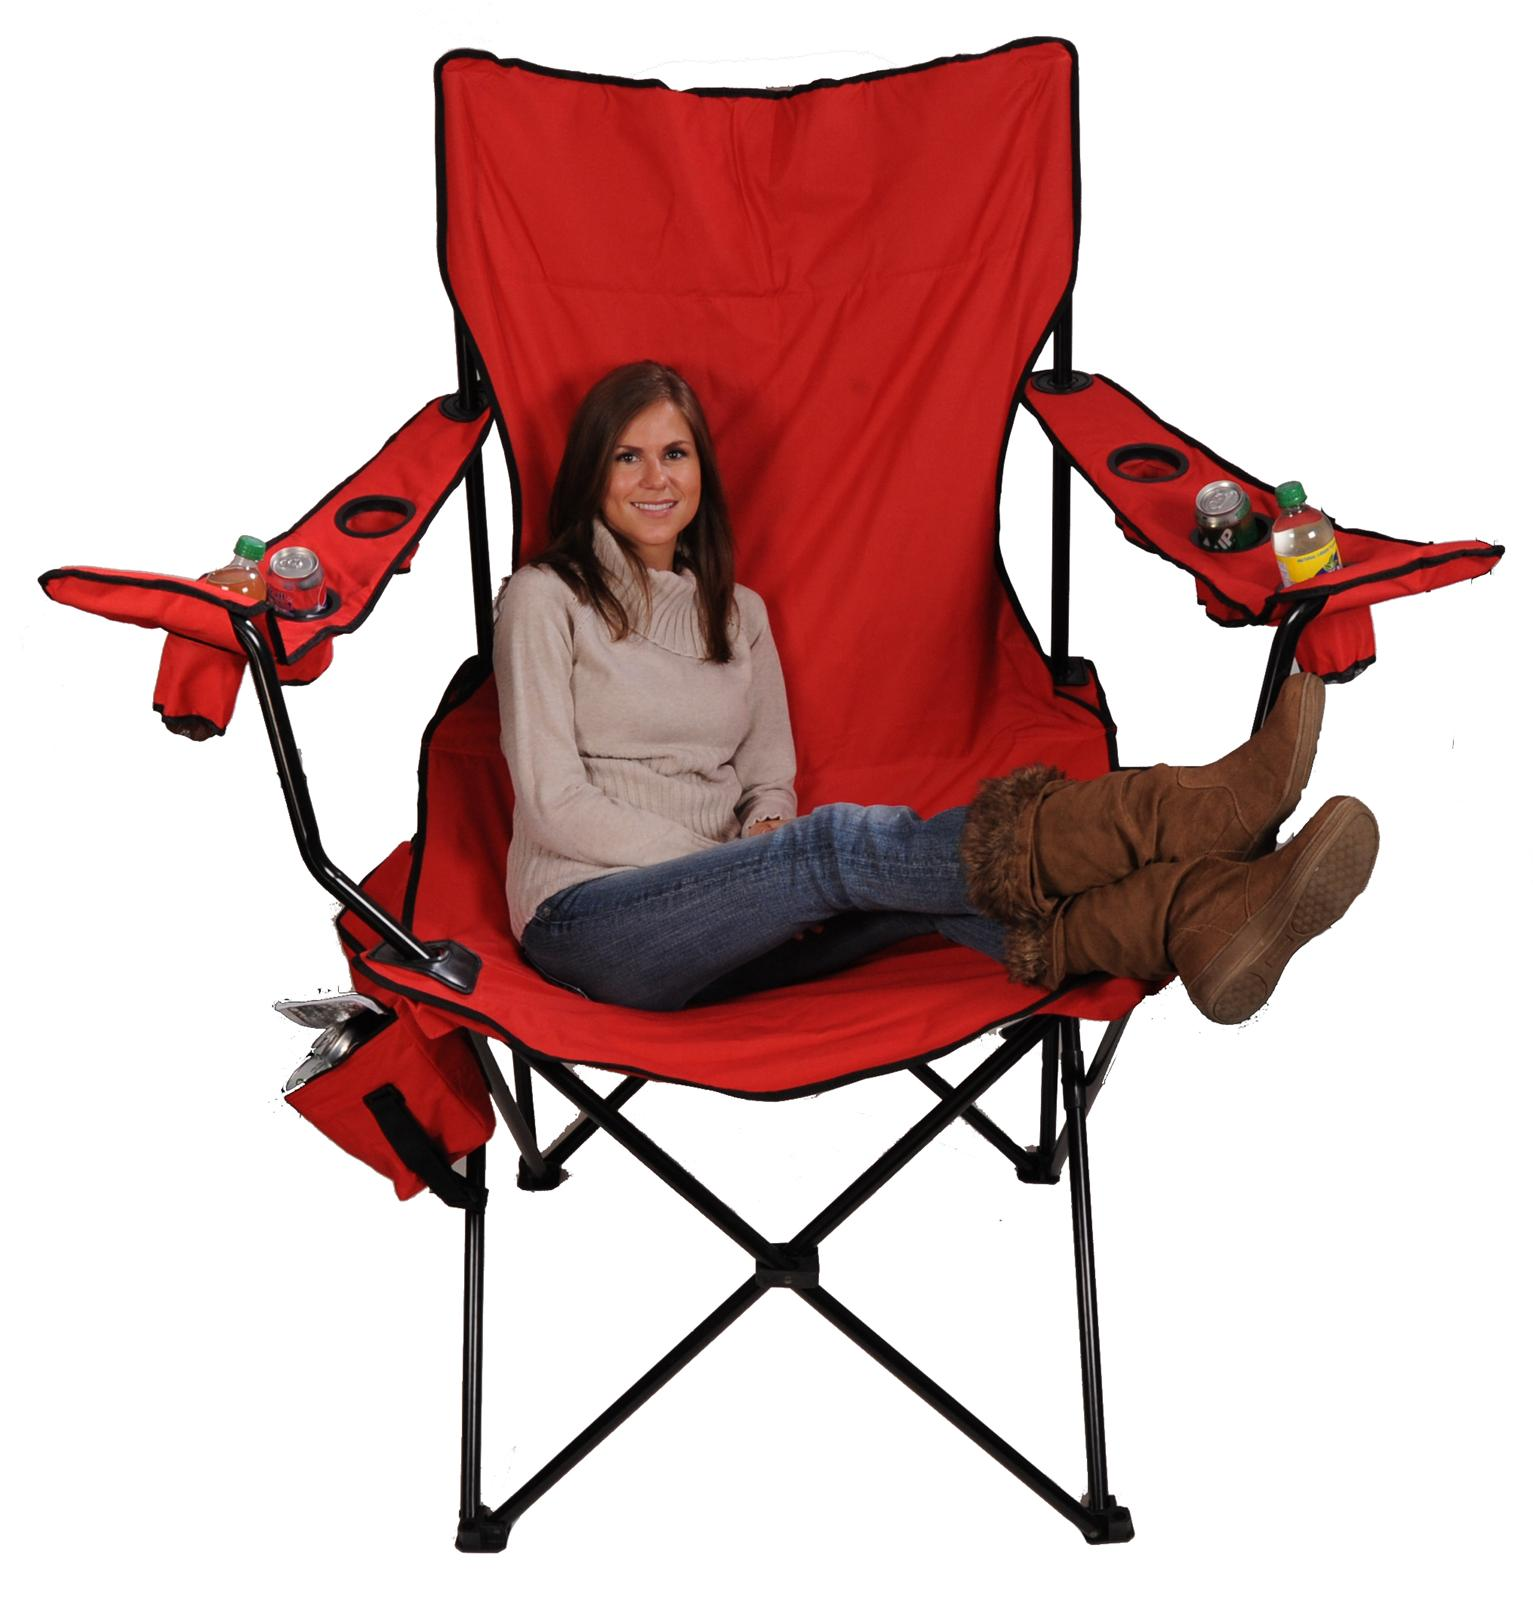 Camping Chair With Canopy Red Kingpin Folding Chair 7002